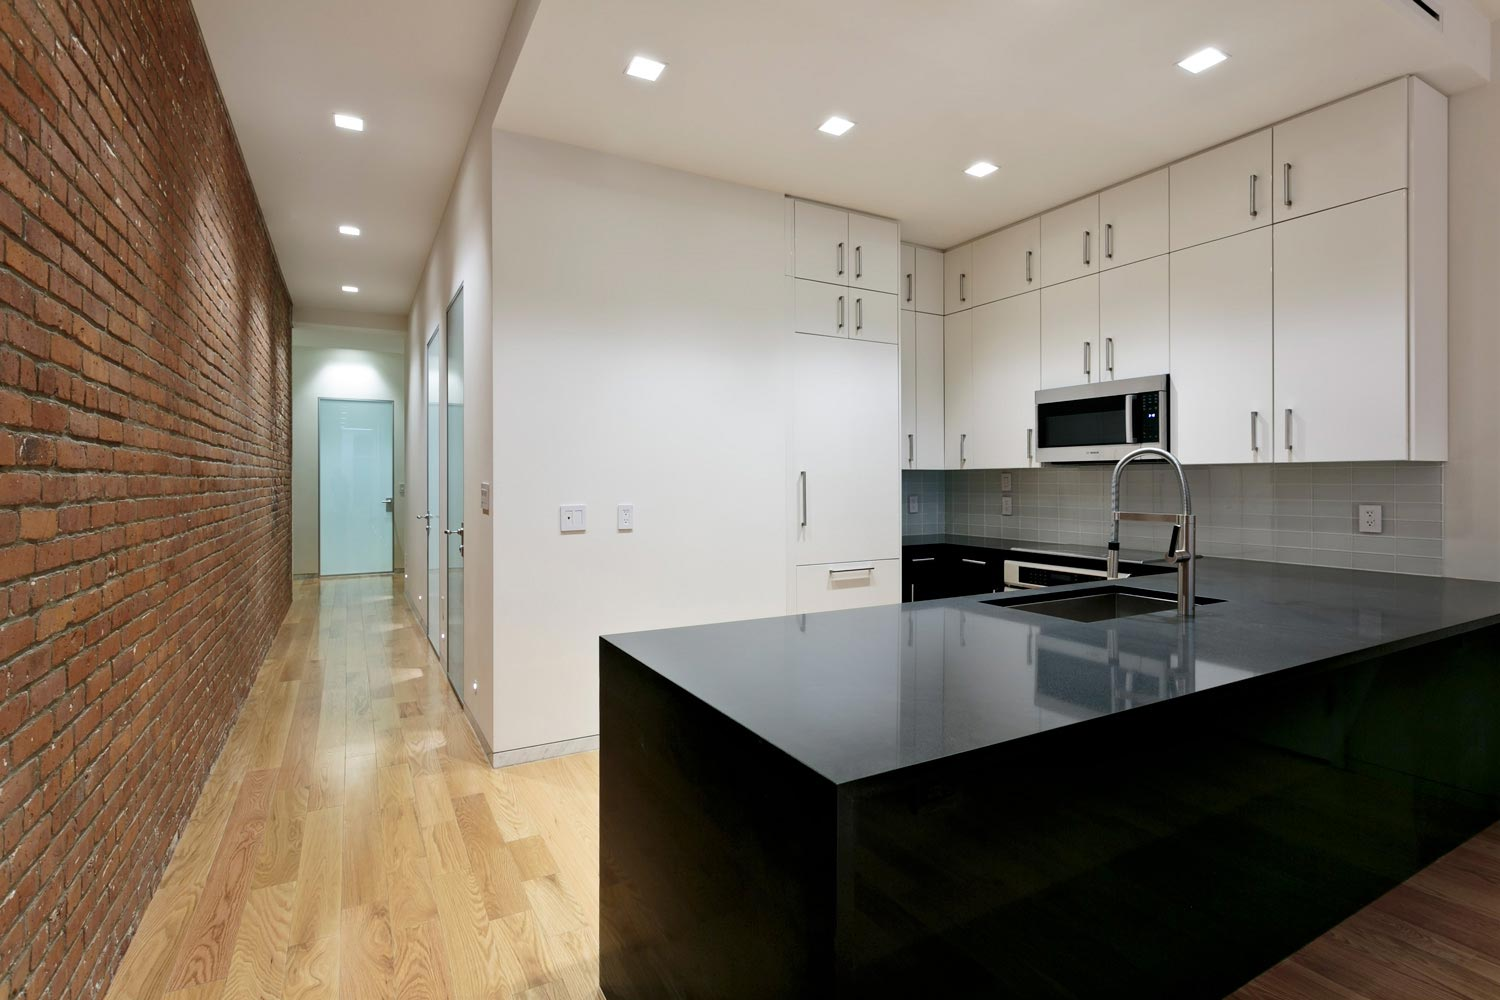 Open kitchen at this residential loft renovation in Tribeca. Project by OCV Architects.